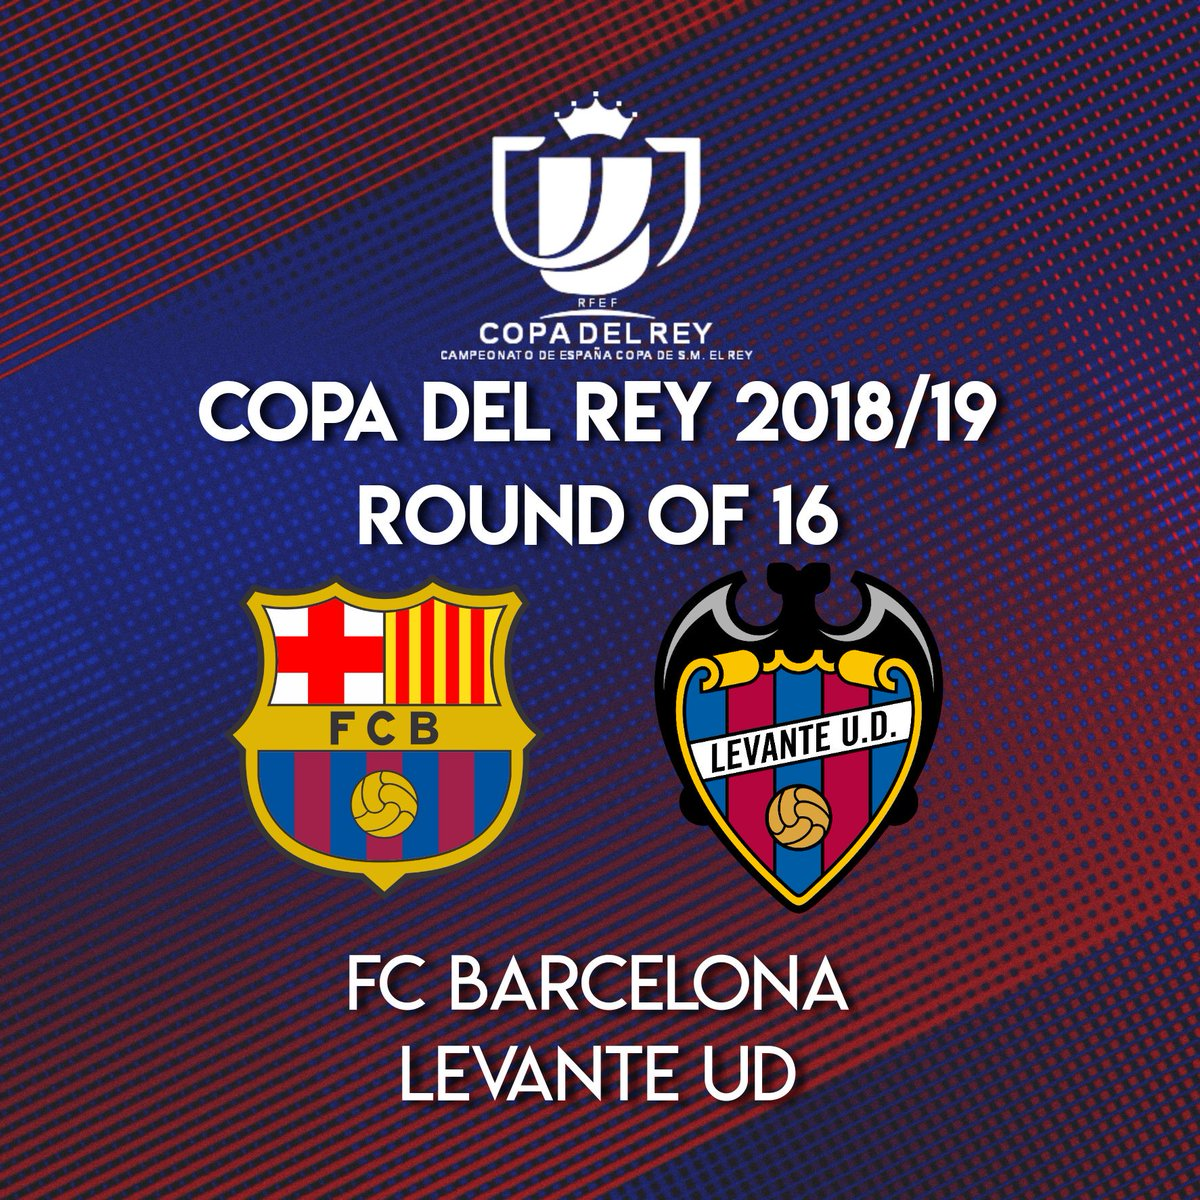 FC Barcelona will face @LevanteUD in the last 16 of the Copa del Rey!   The first leg will be played away and the return leg will be at the Camp Nou.   #ForçaBarça #CopaBarça